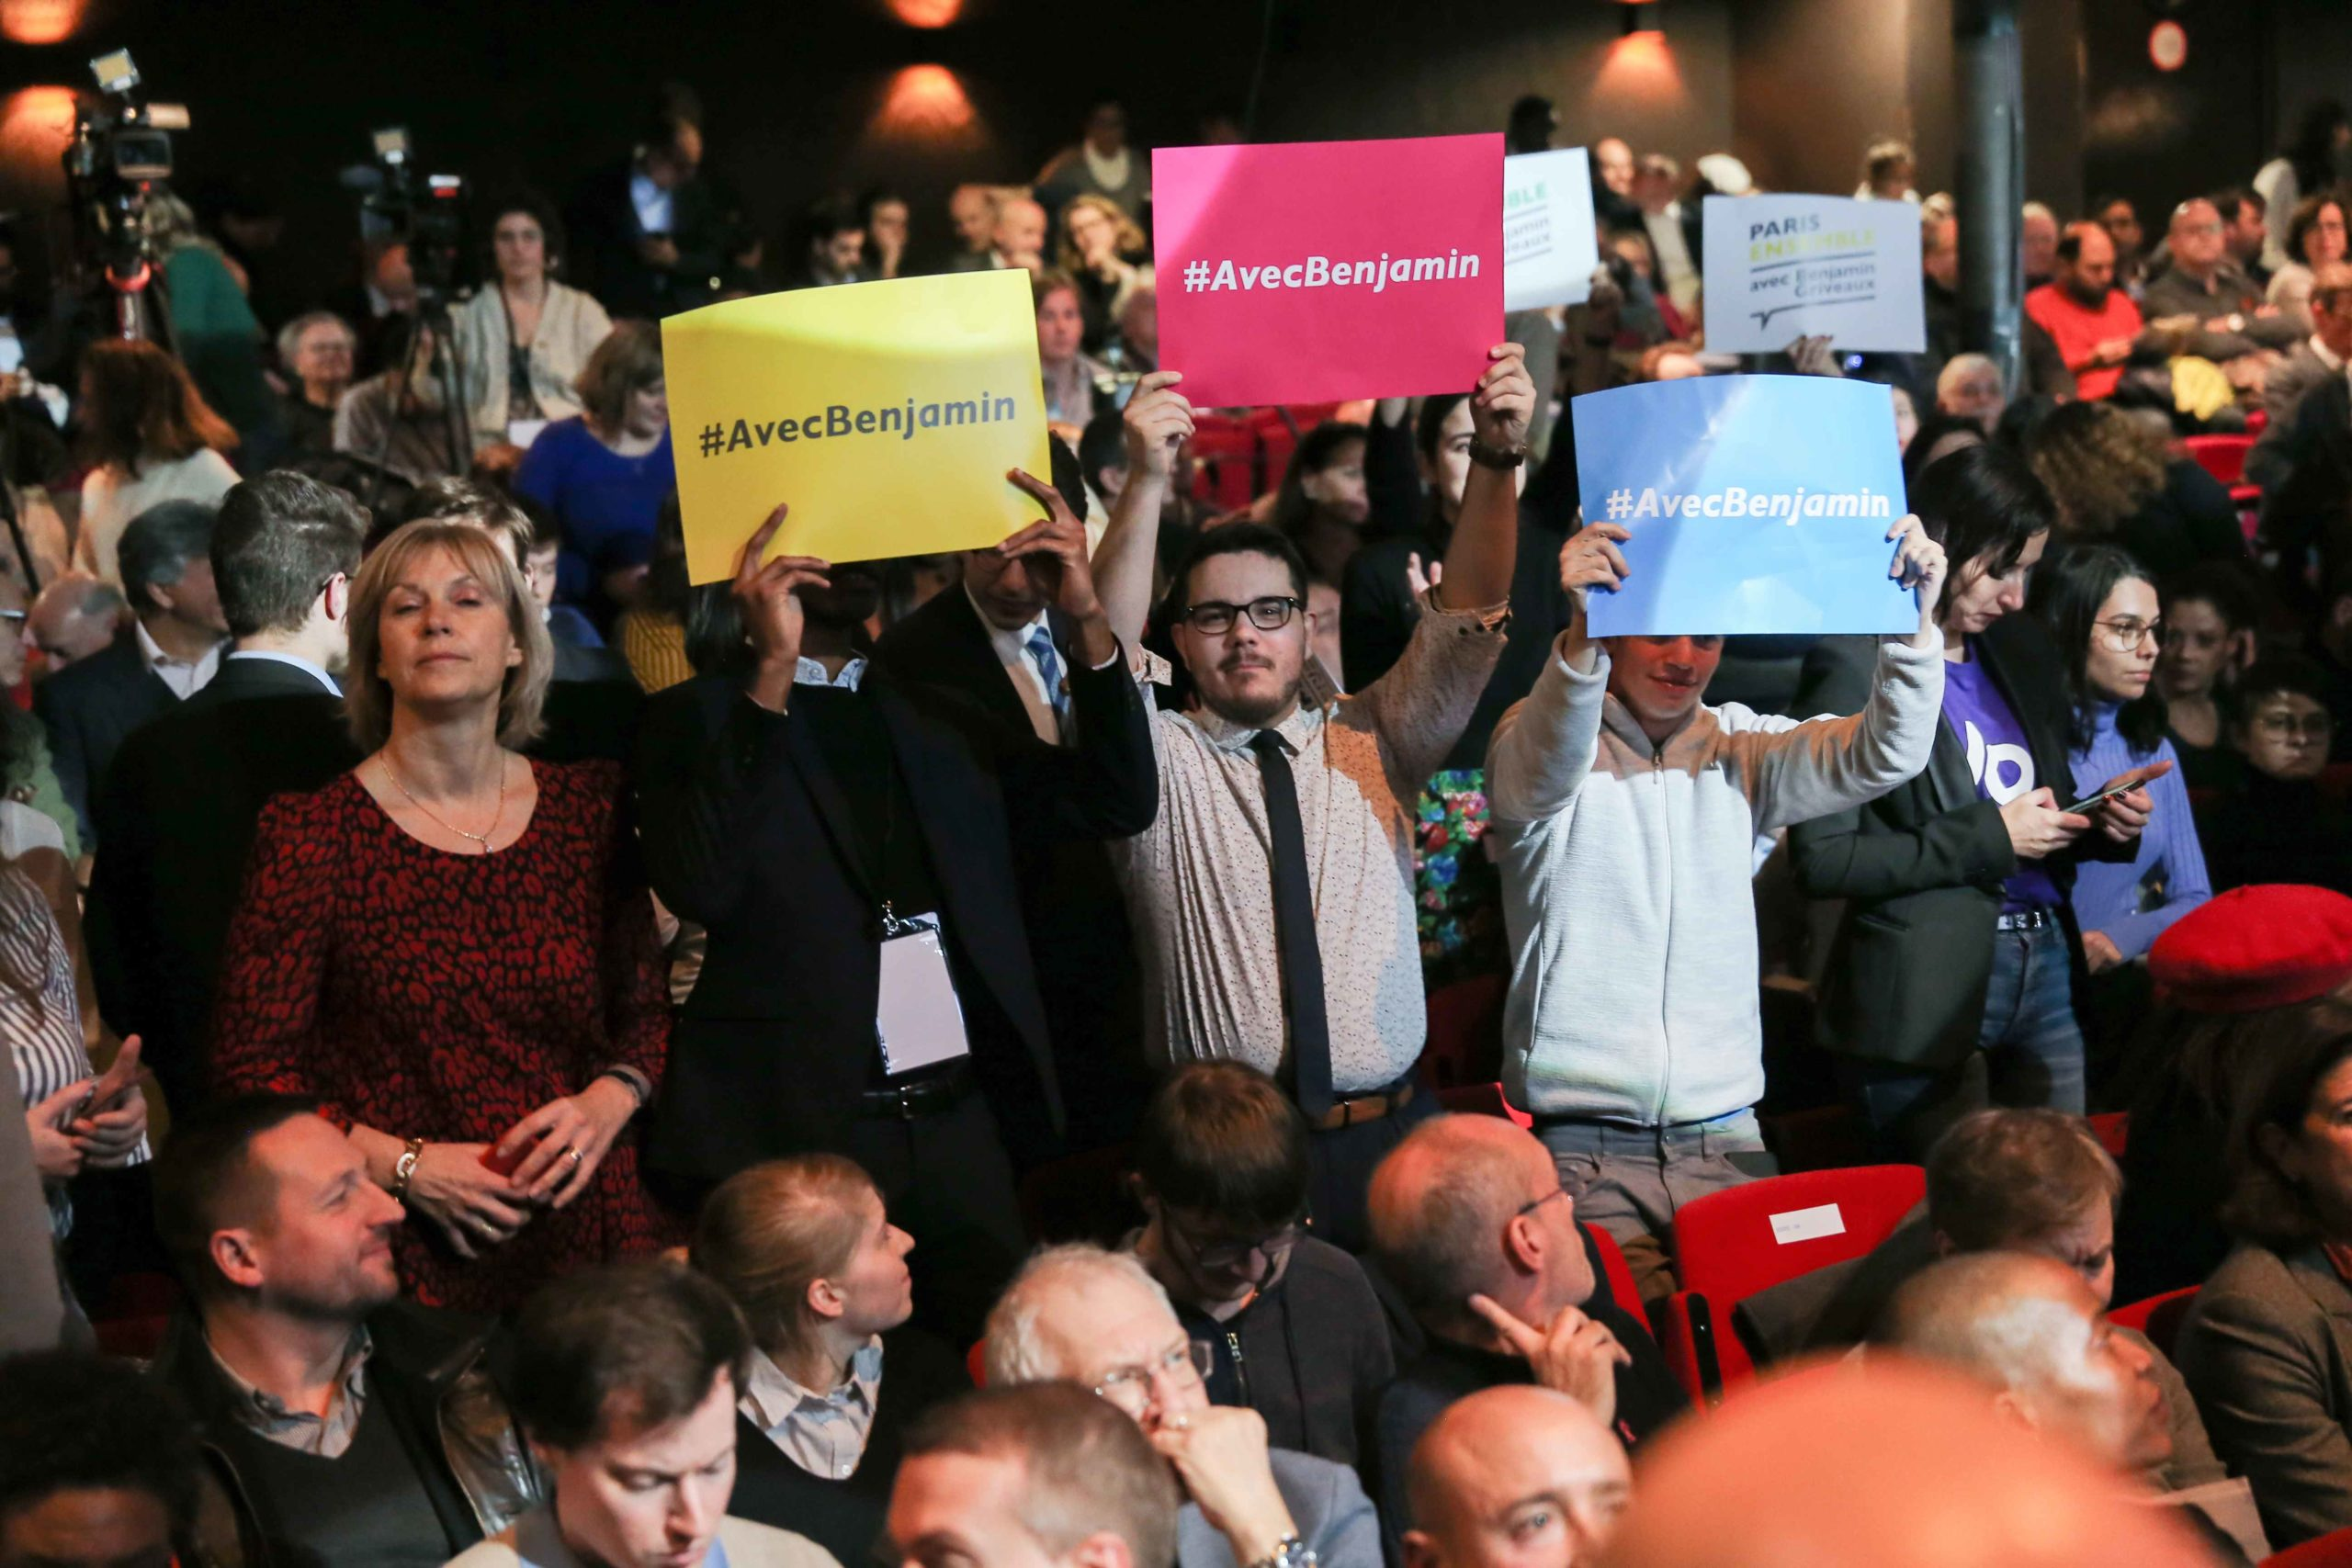 Supporters turn up holdings signs that say « With Benjamin » during the Benjamin Griveaux meeting, at the Bobino theater in Paris, on January 27, 2020. Benjamin Griveaux is the official La Republique en Marche (LREM) candidate for the Paris 2020 mayoral